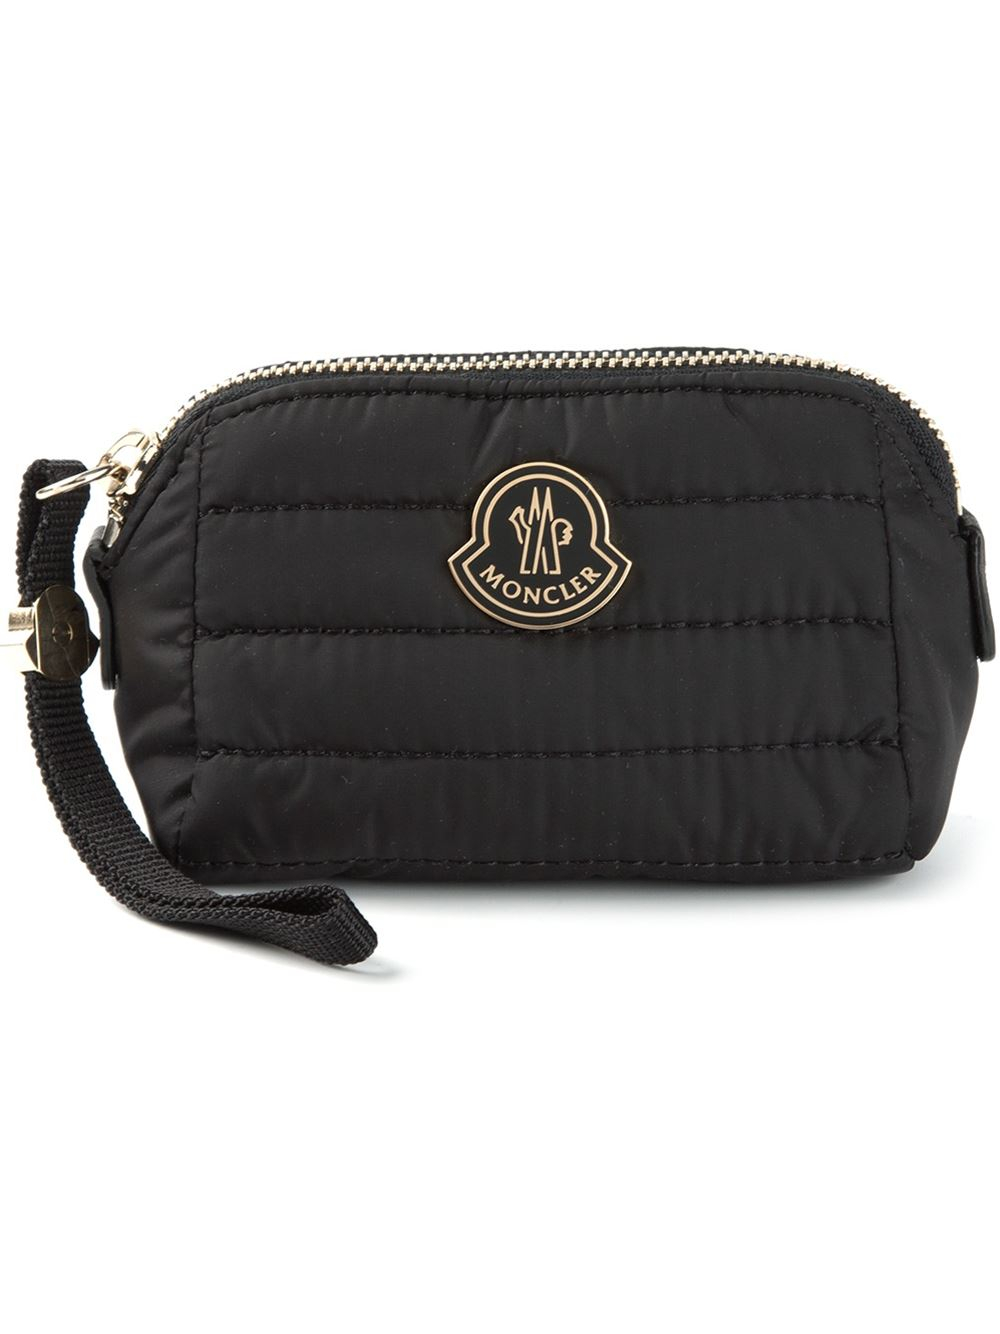 Lyst - Moncler Quilted Wash Bag in Black 7ec1b76324030